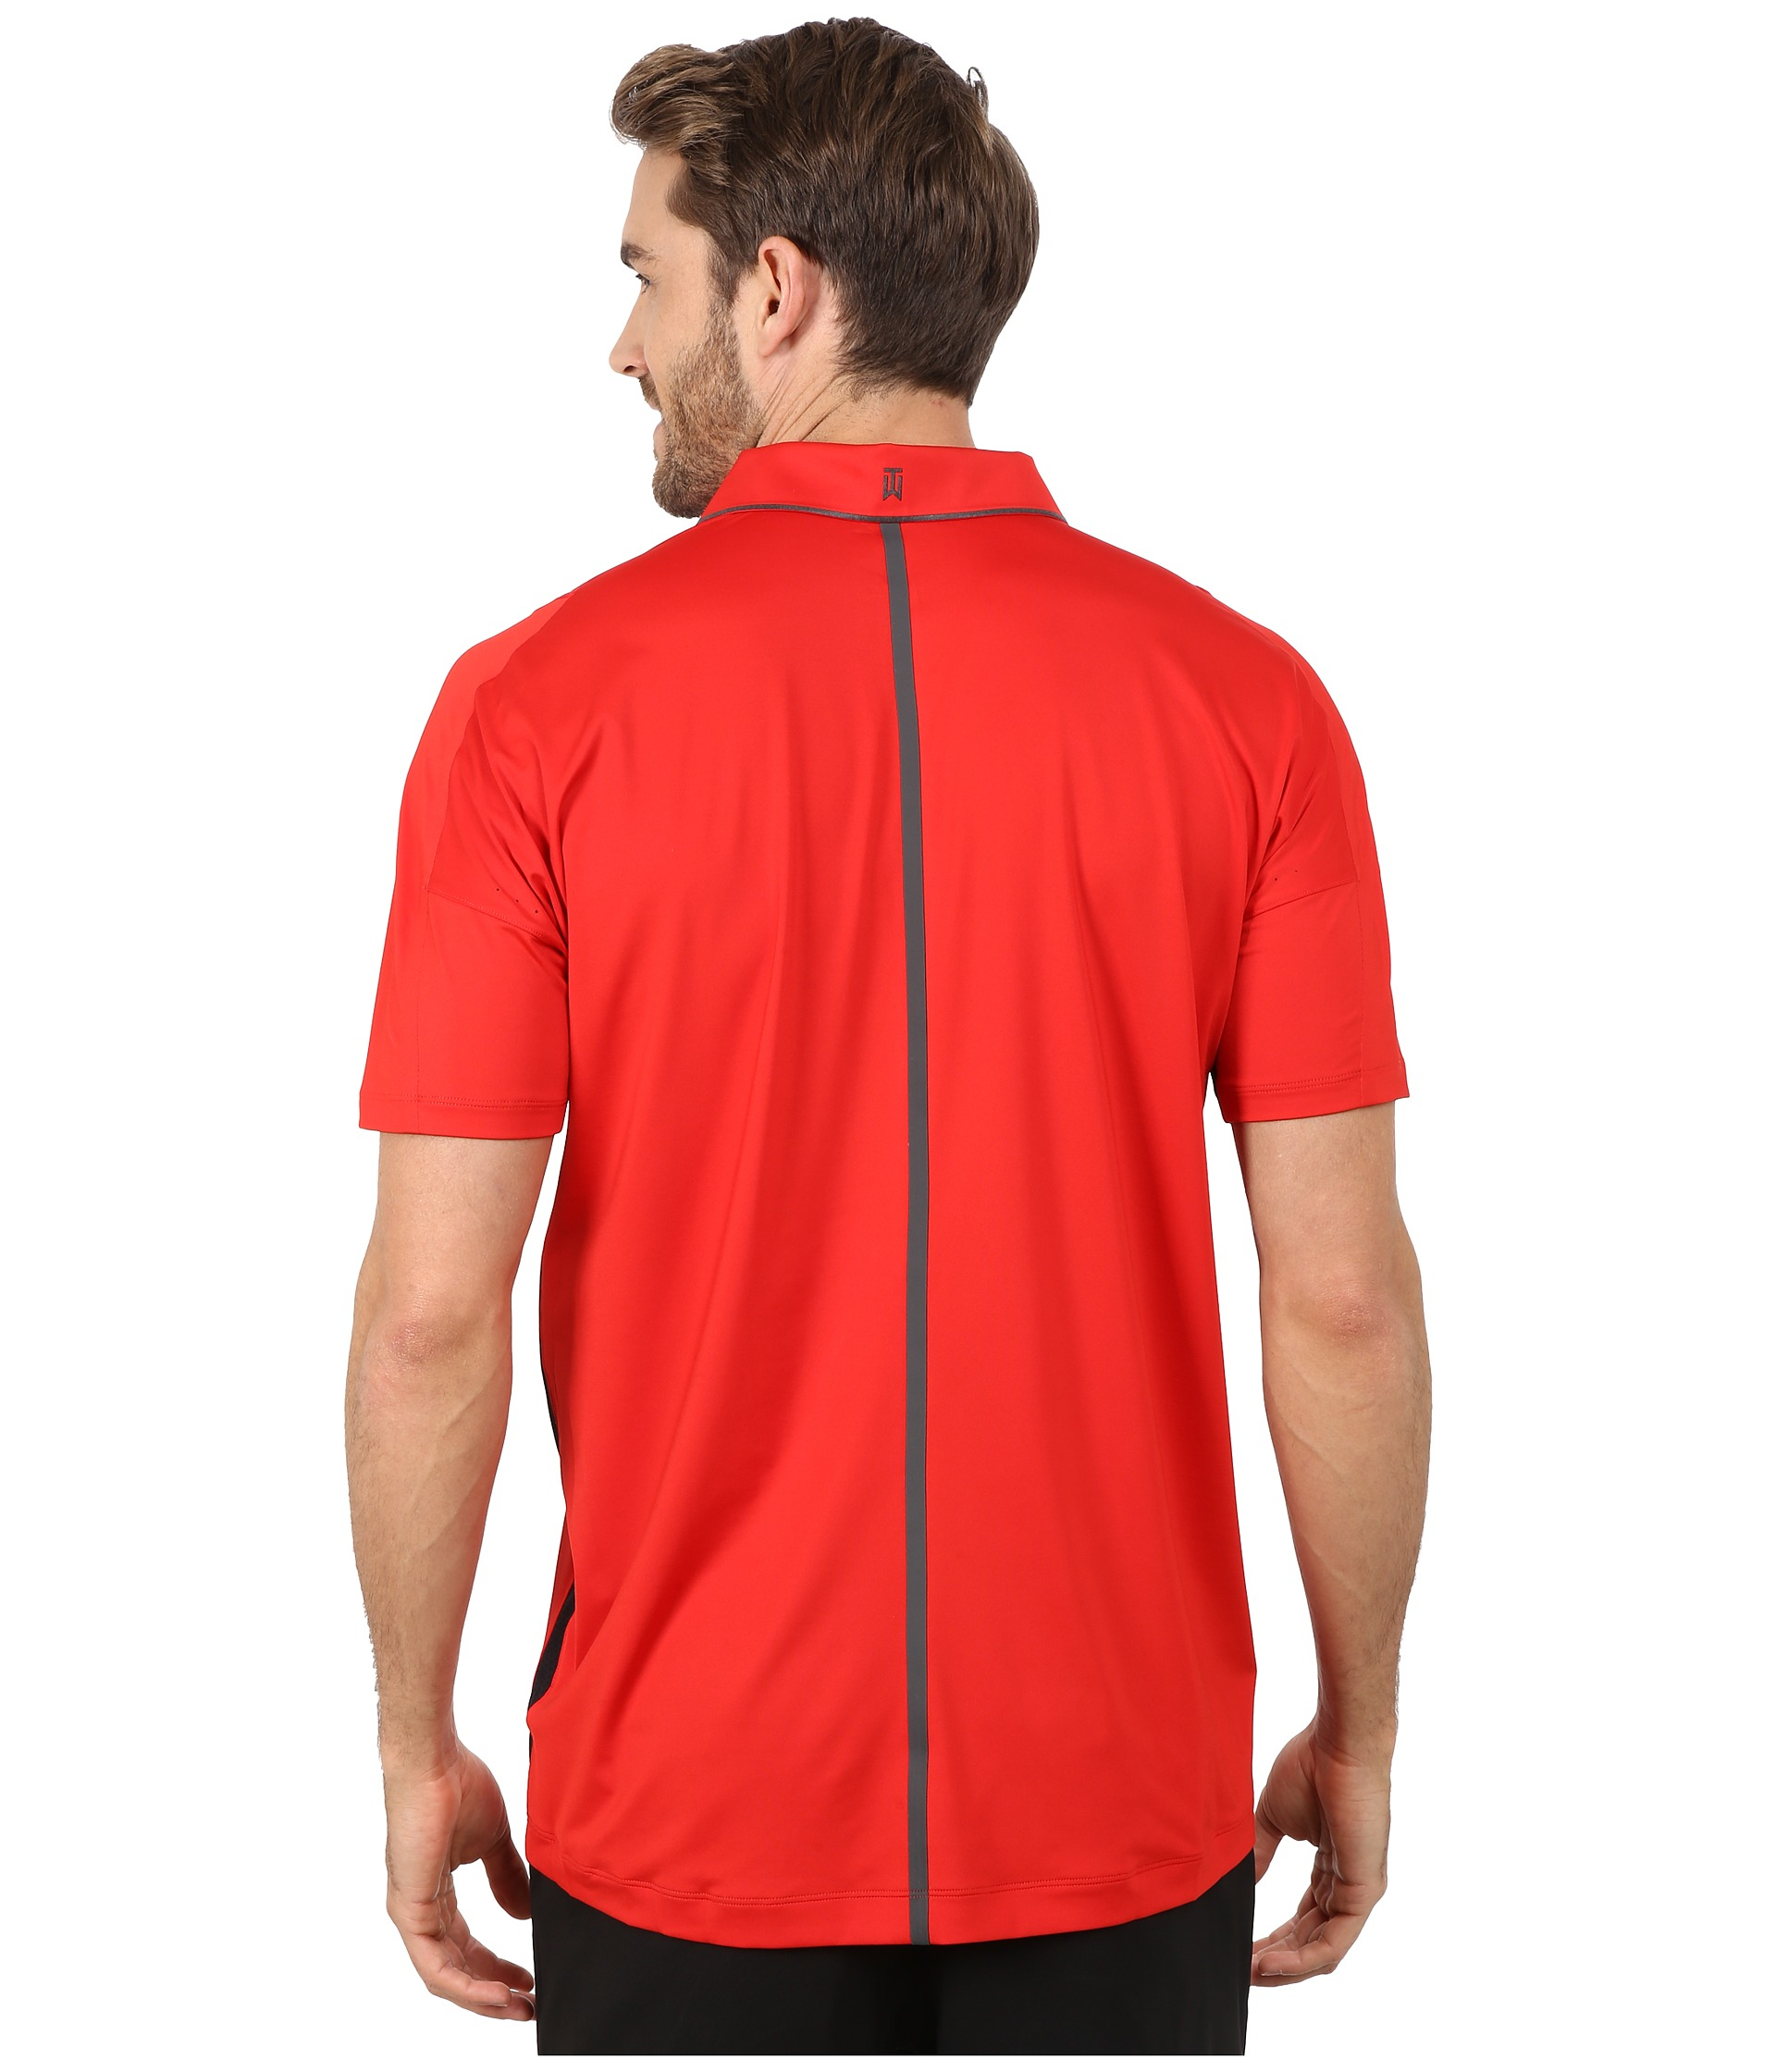 078ba4d58 Nike Tiger Woods Velocity Ultra Polo Shirt in Red for Men - Lyst